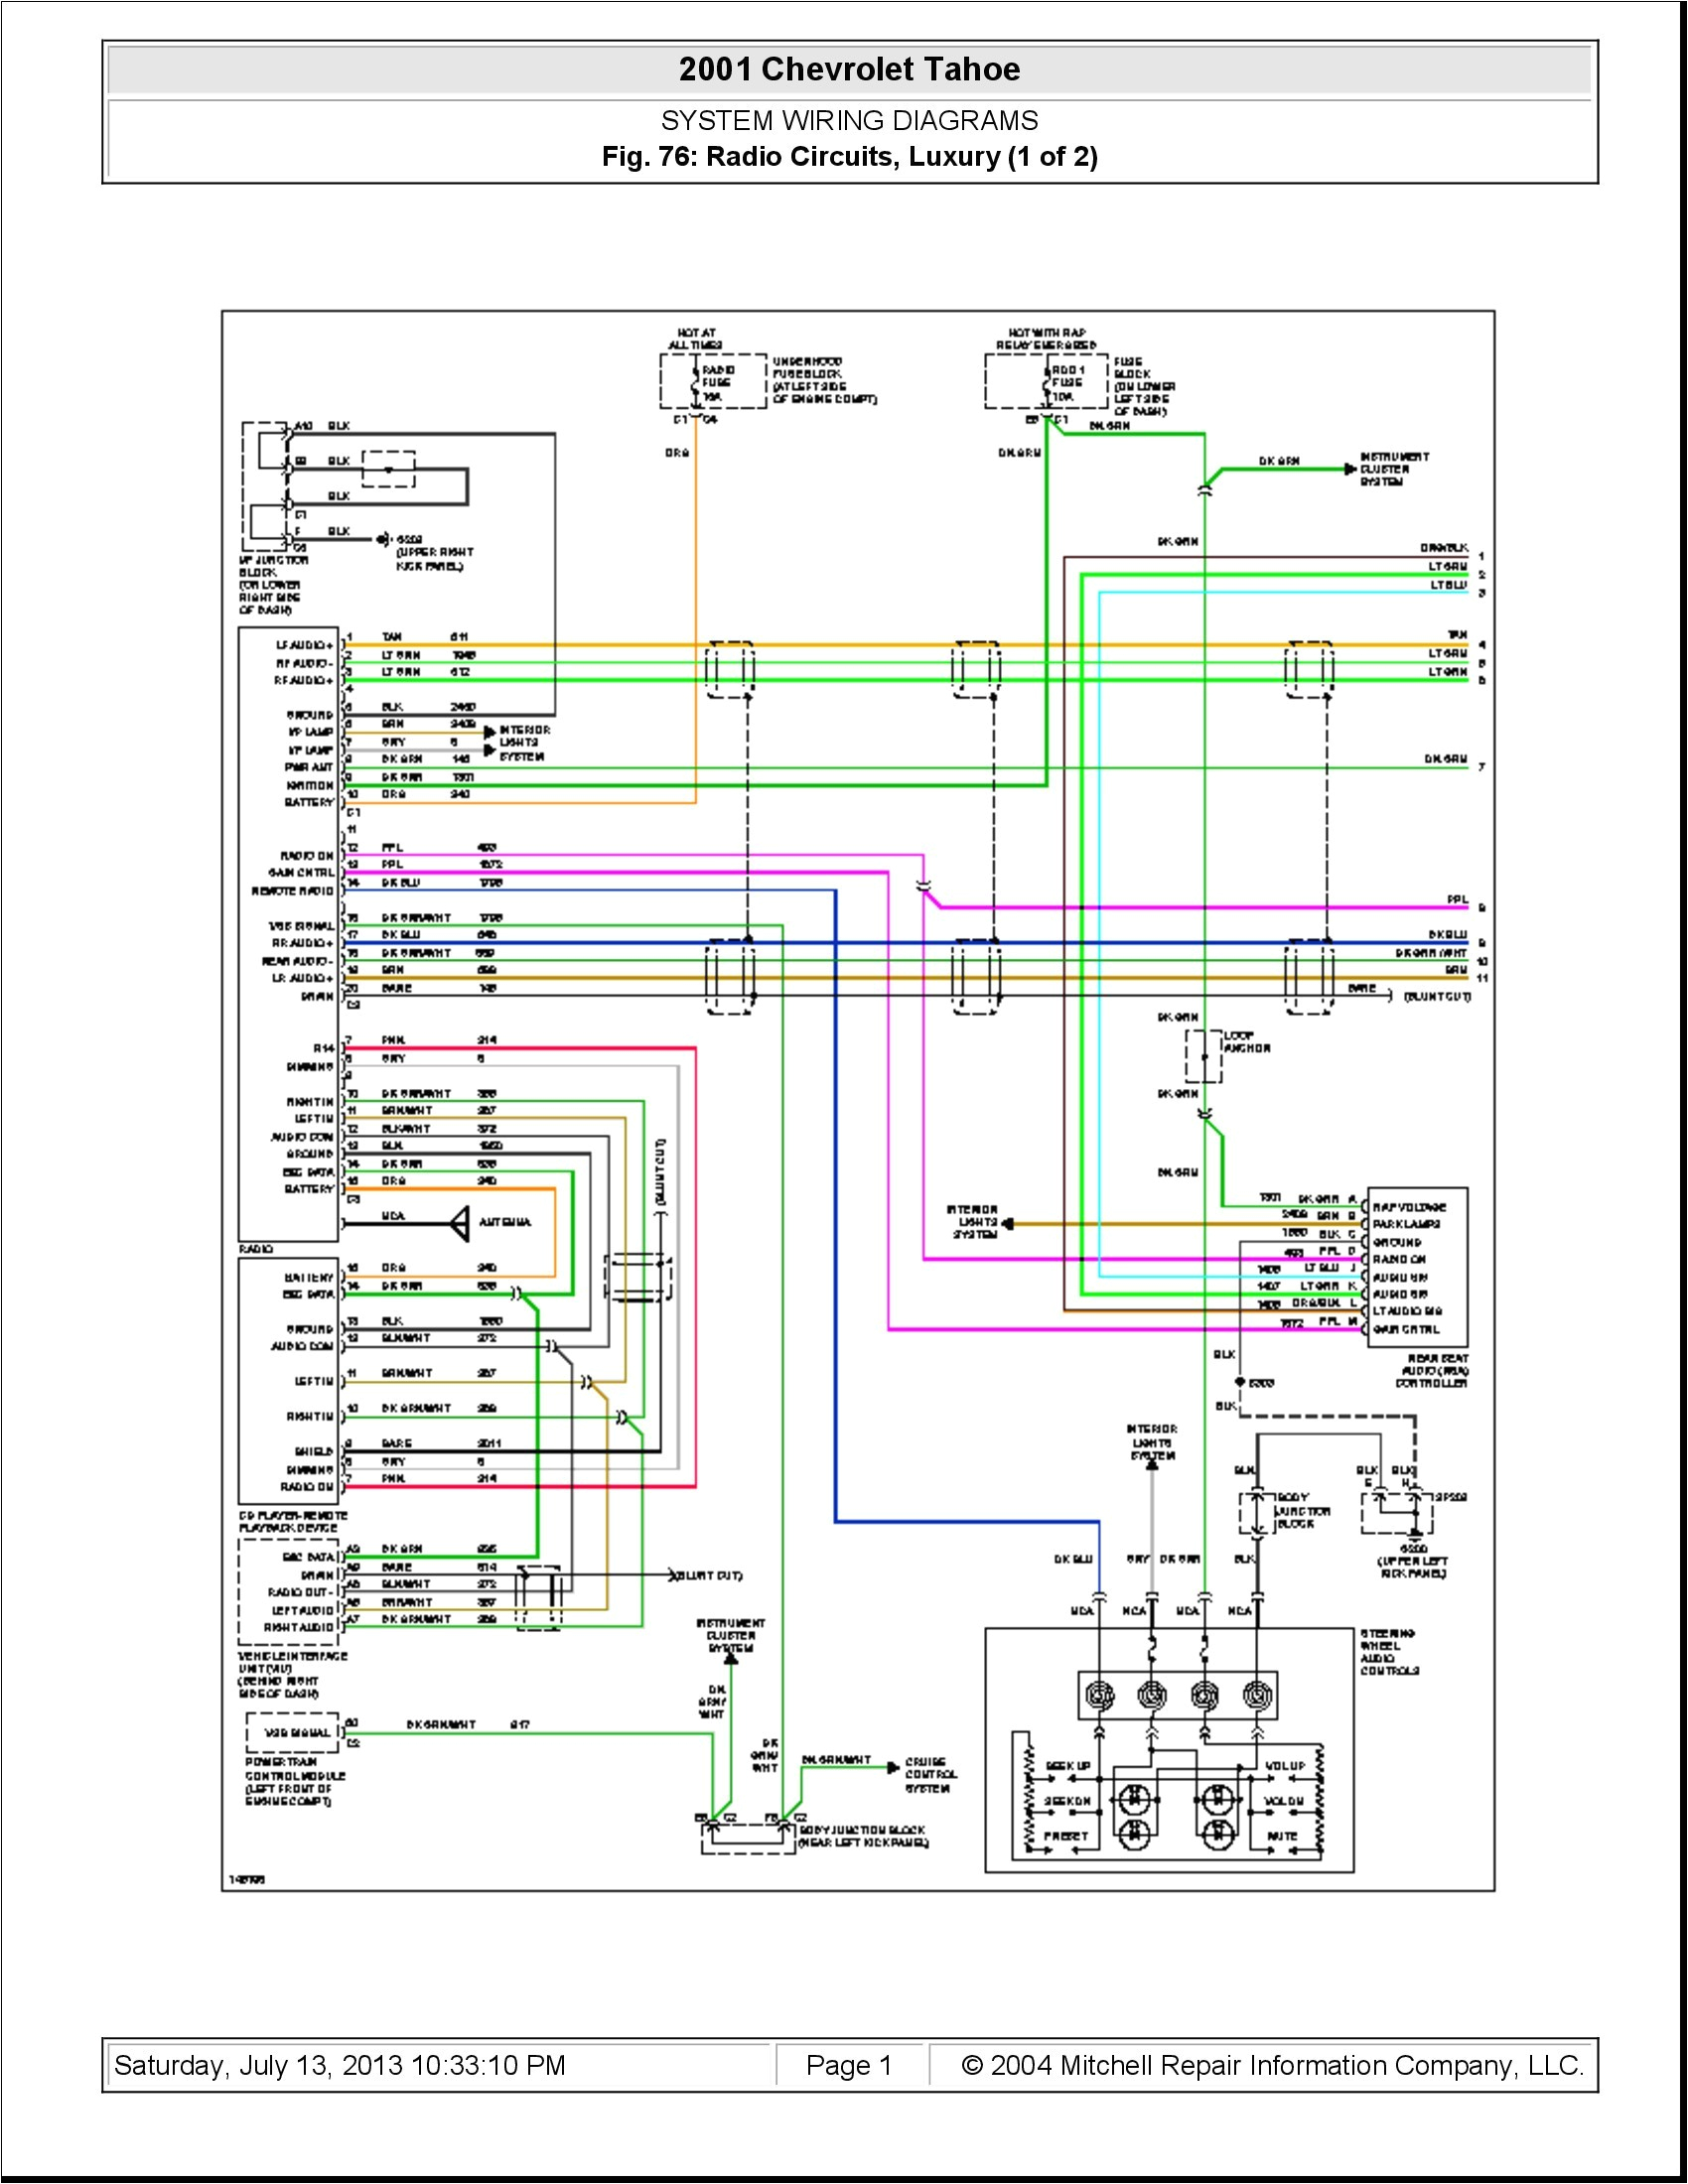 1998 camaro stereo wiring diagram wiring diagram blog1998 camaro stereo wiring diagram wiring diagram preview 1998